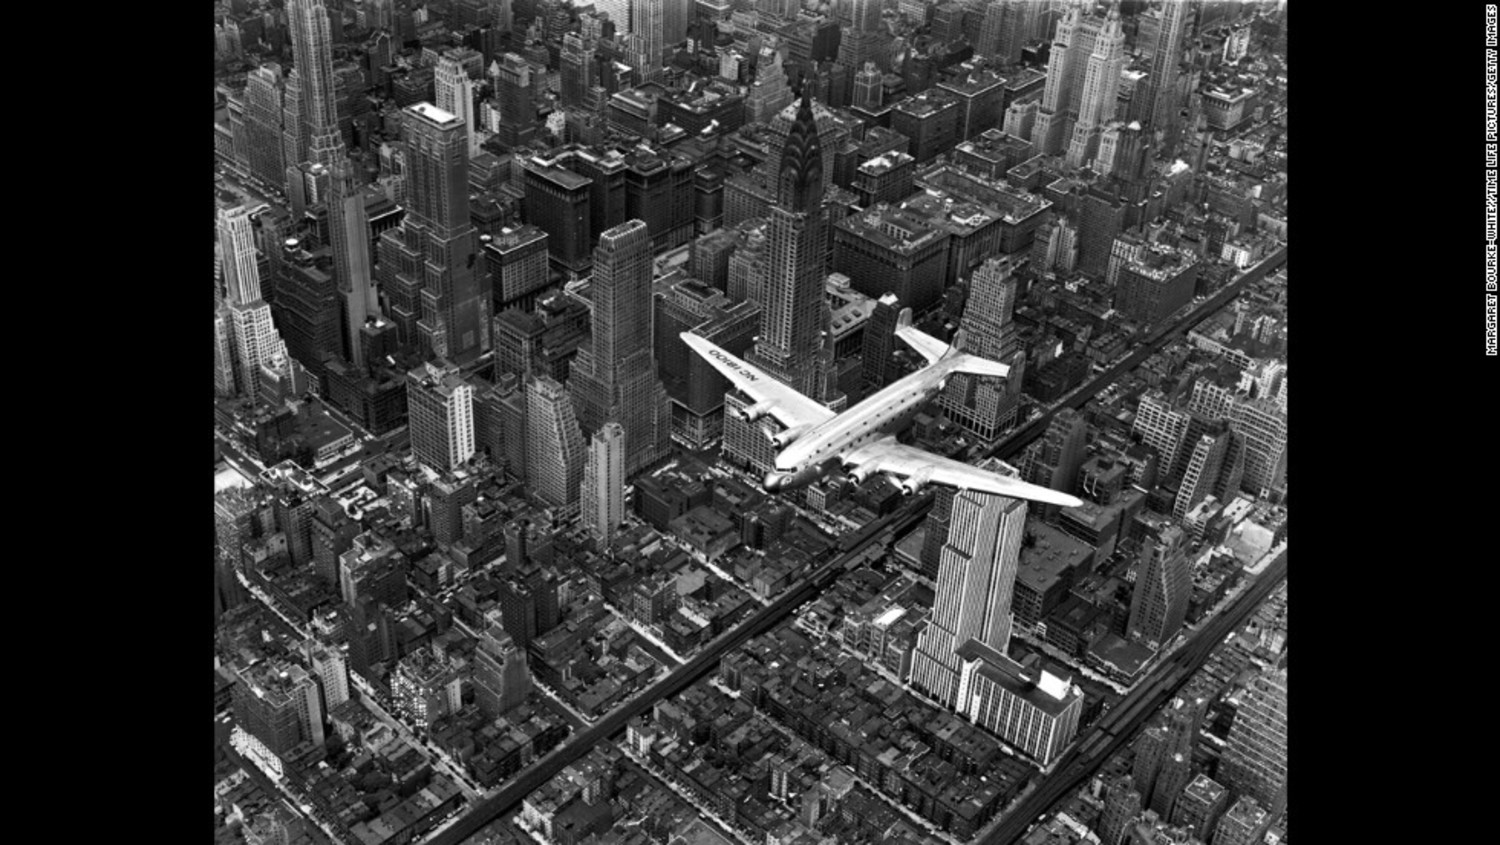 Life magazine photographer Margaret Bourke-White snapped this photo showing a DC-4 passenger plane flying over midtown Manhattan in 1939.